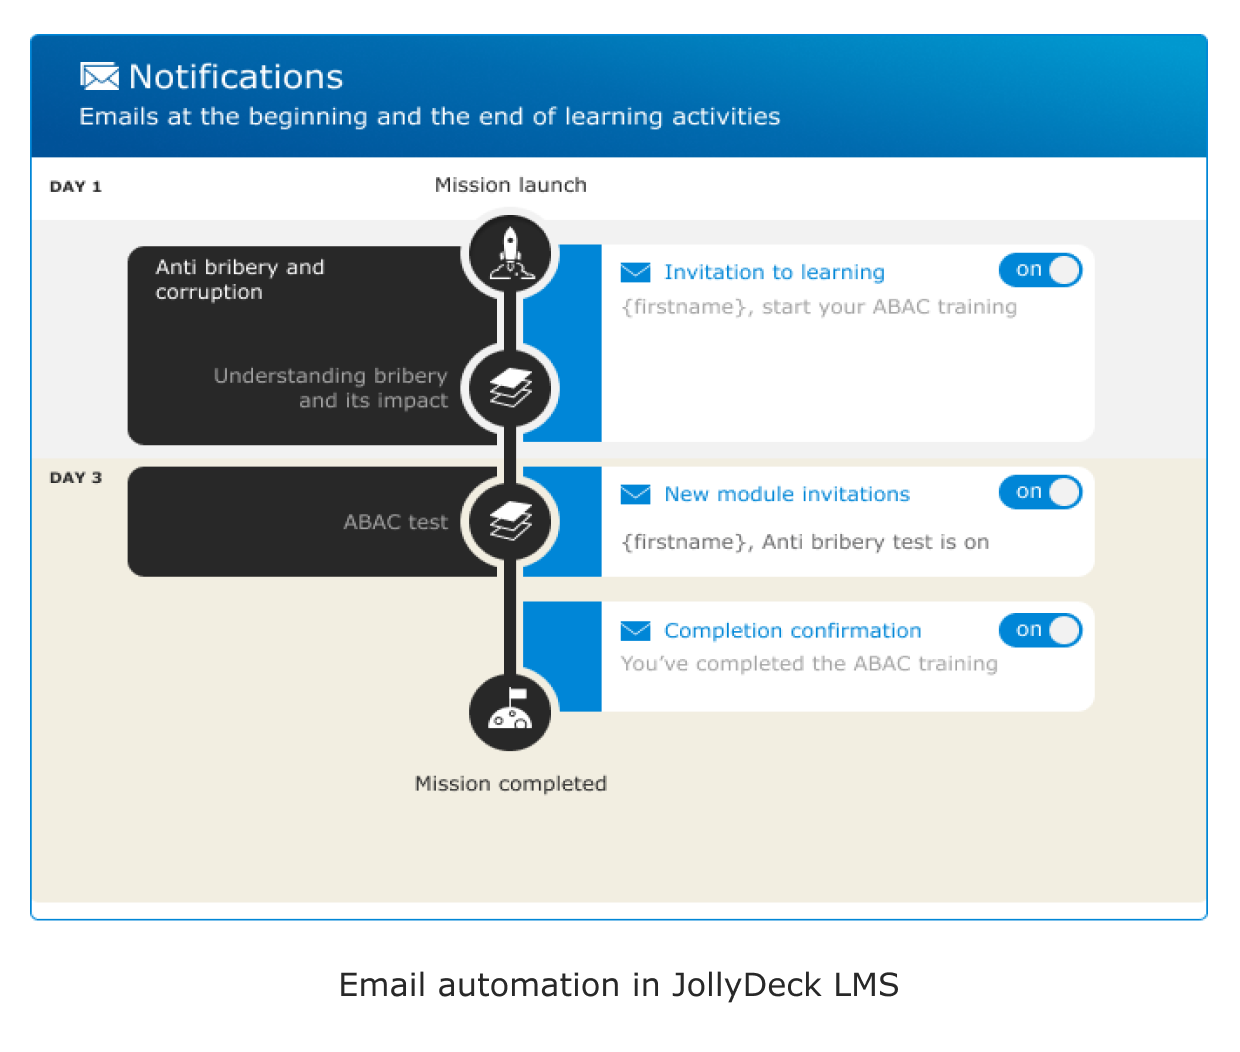 LMS as an email automation tool